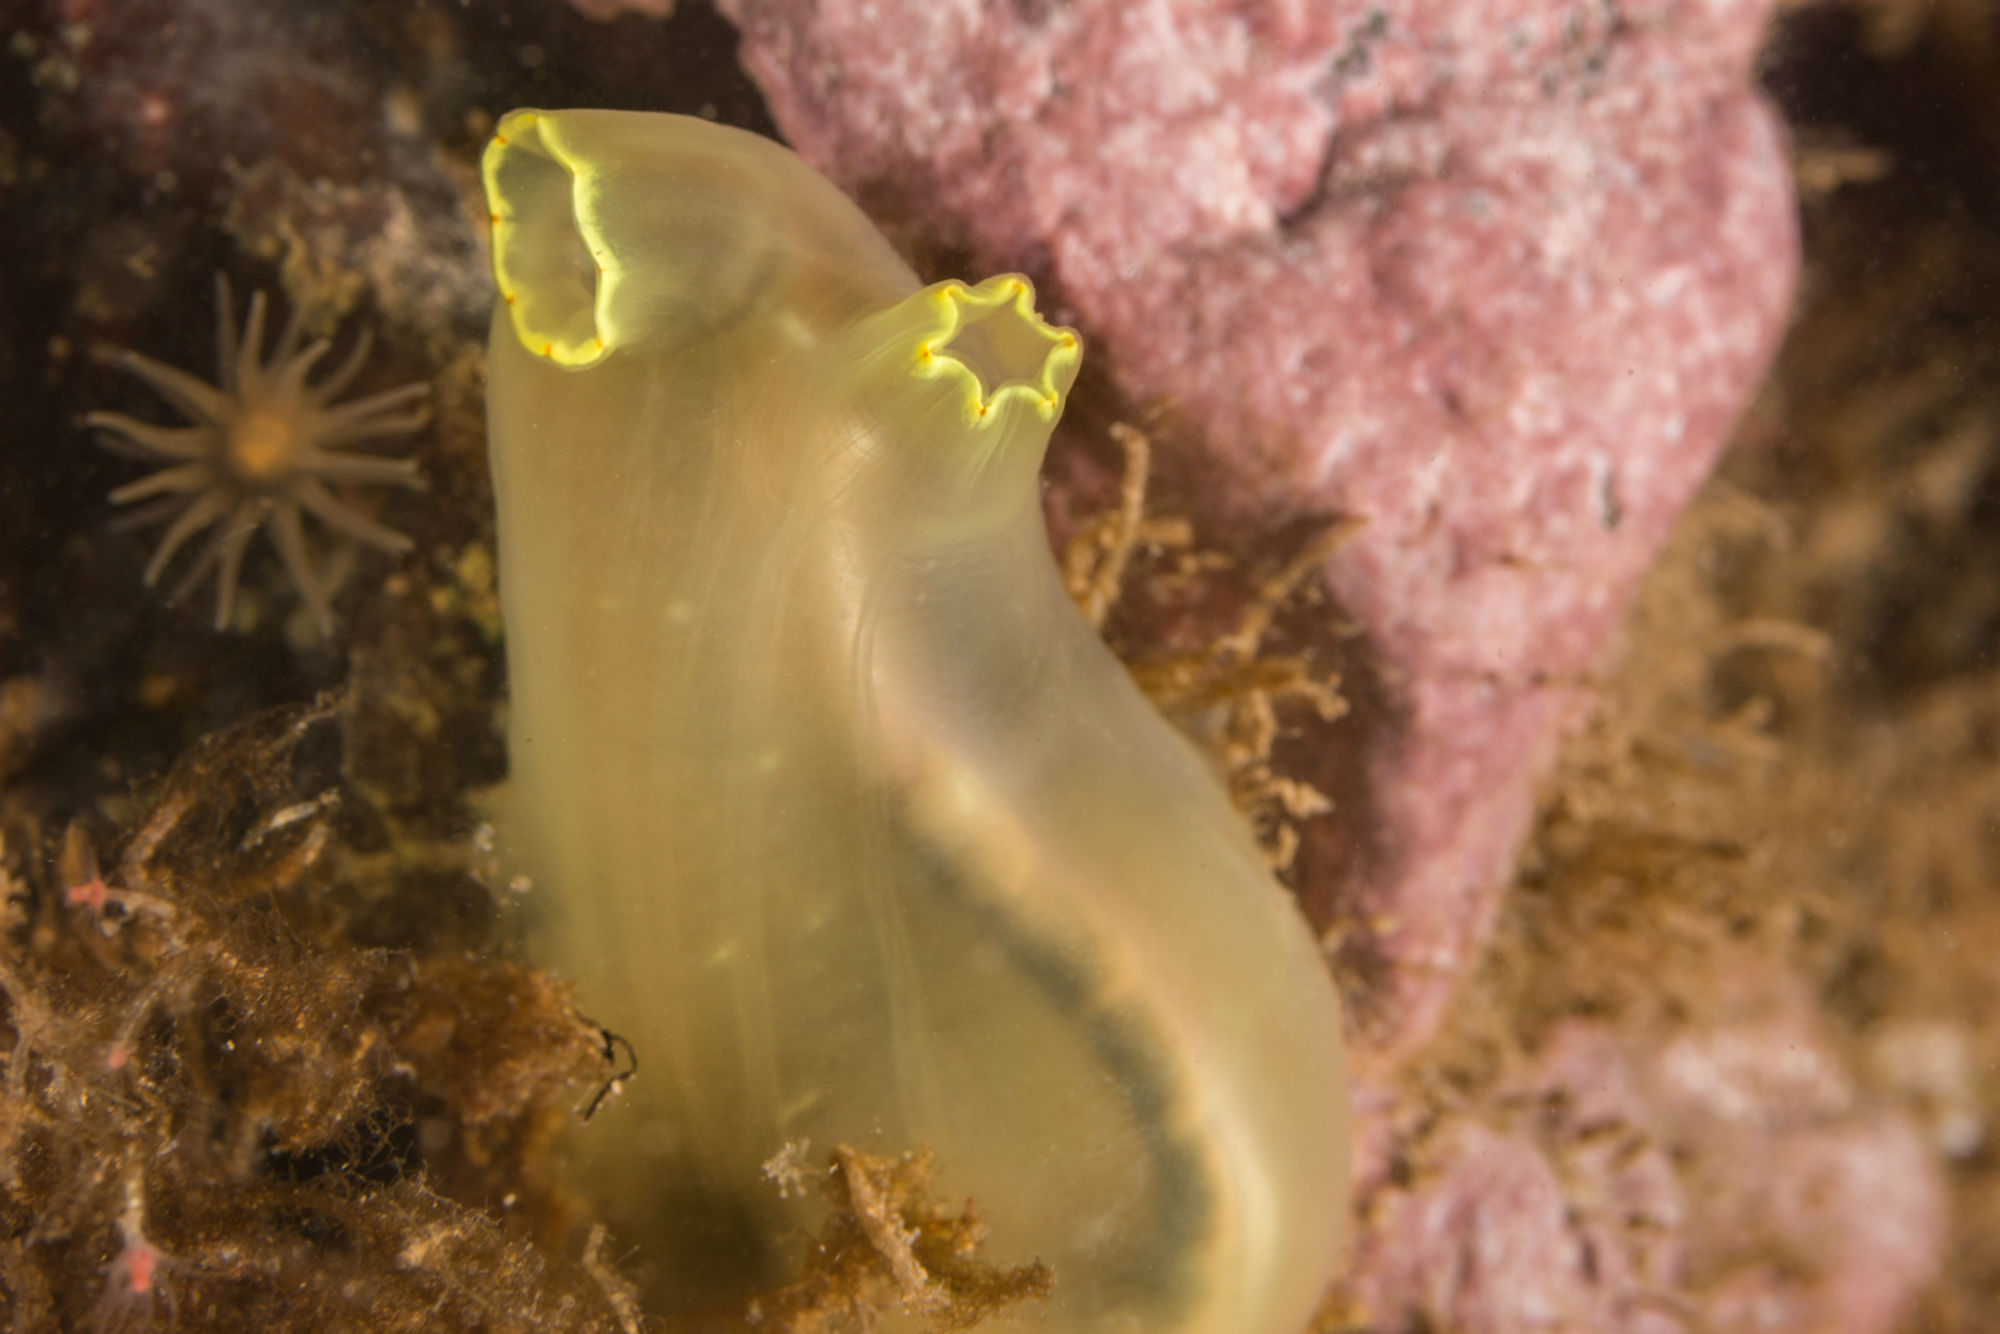 A Translucent Sea Vase Seen While Scuba Diving in New Brunswick's Bay of Fundy